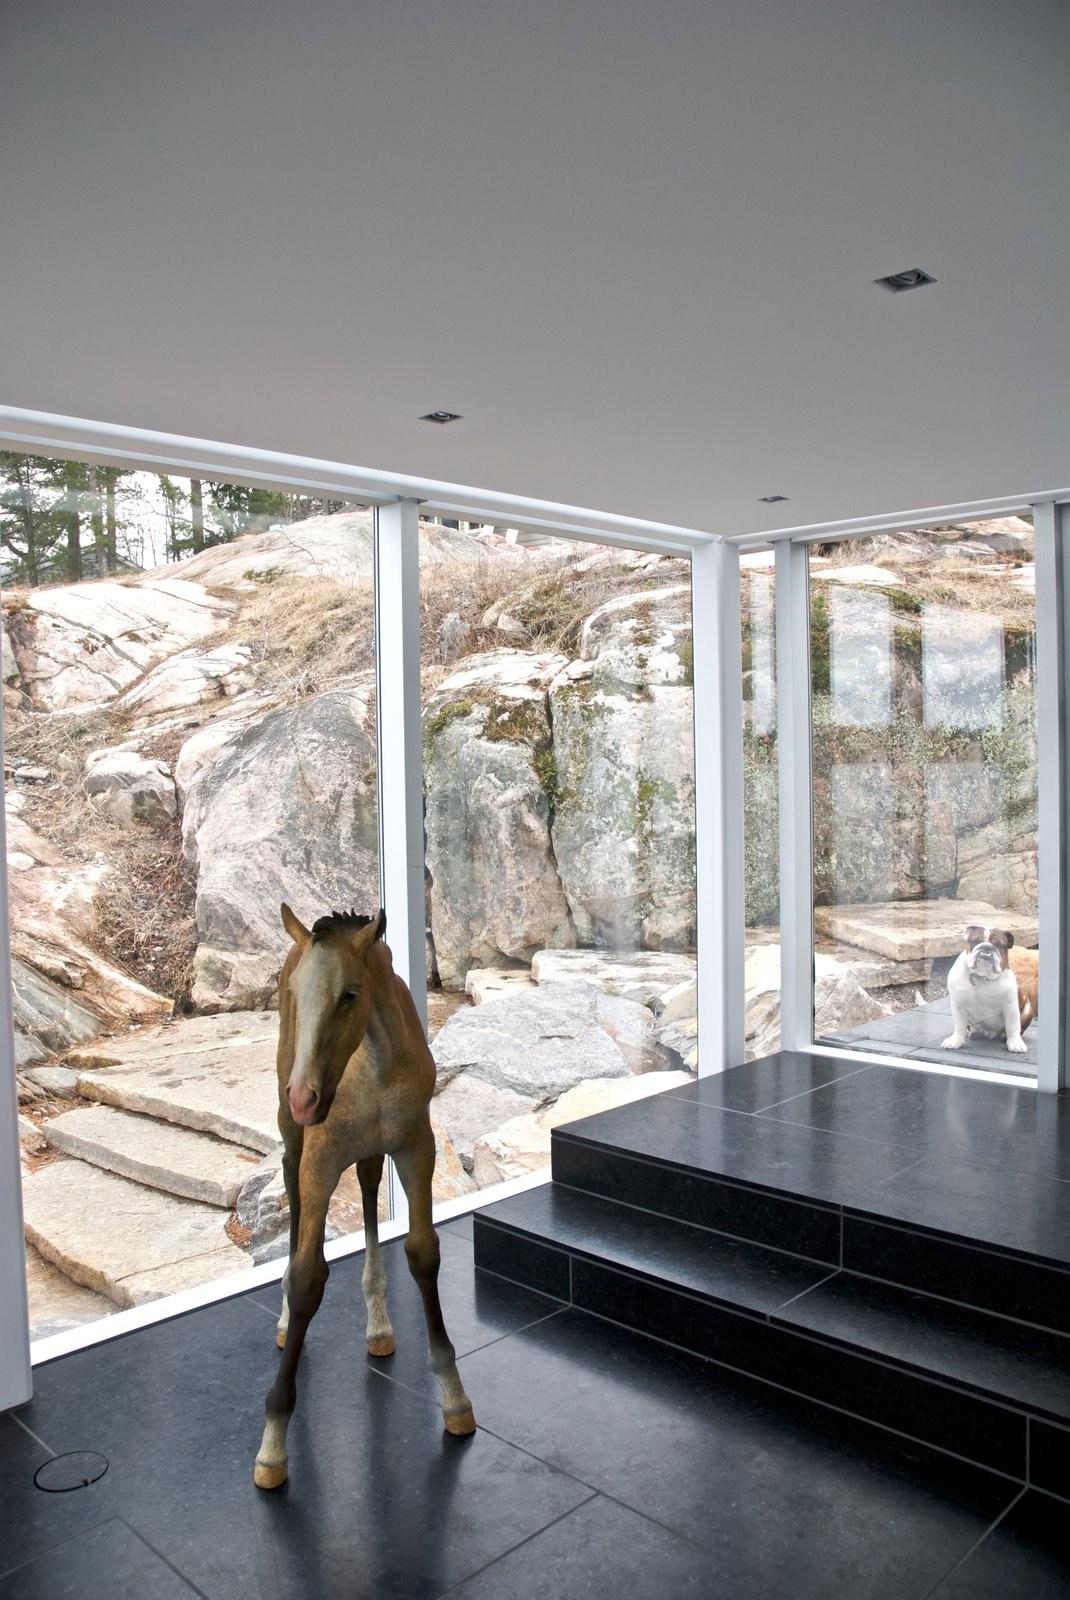 This Mesmerizing Glass House Is Also a Photographer's Lakeside Studio - Photo 8 of 13 -